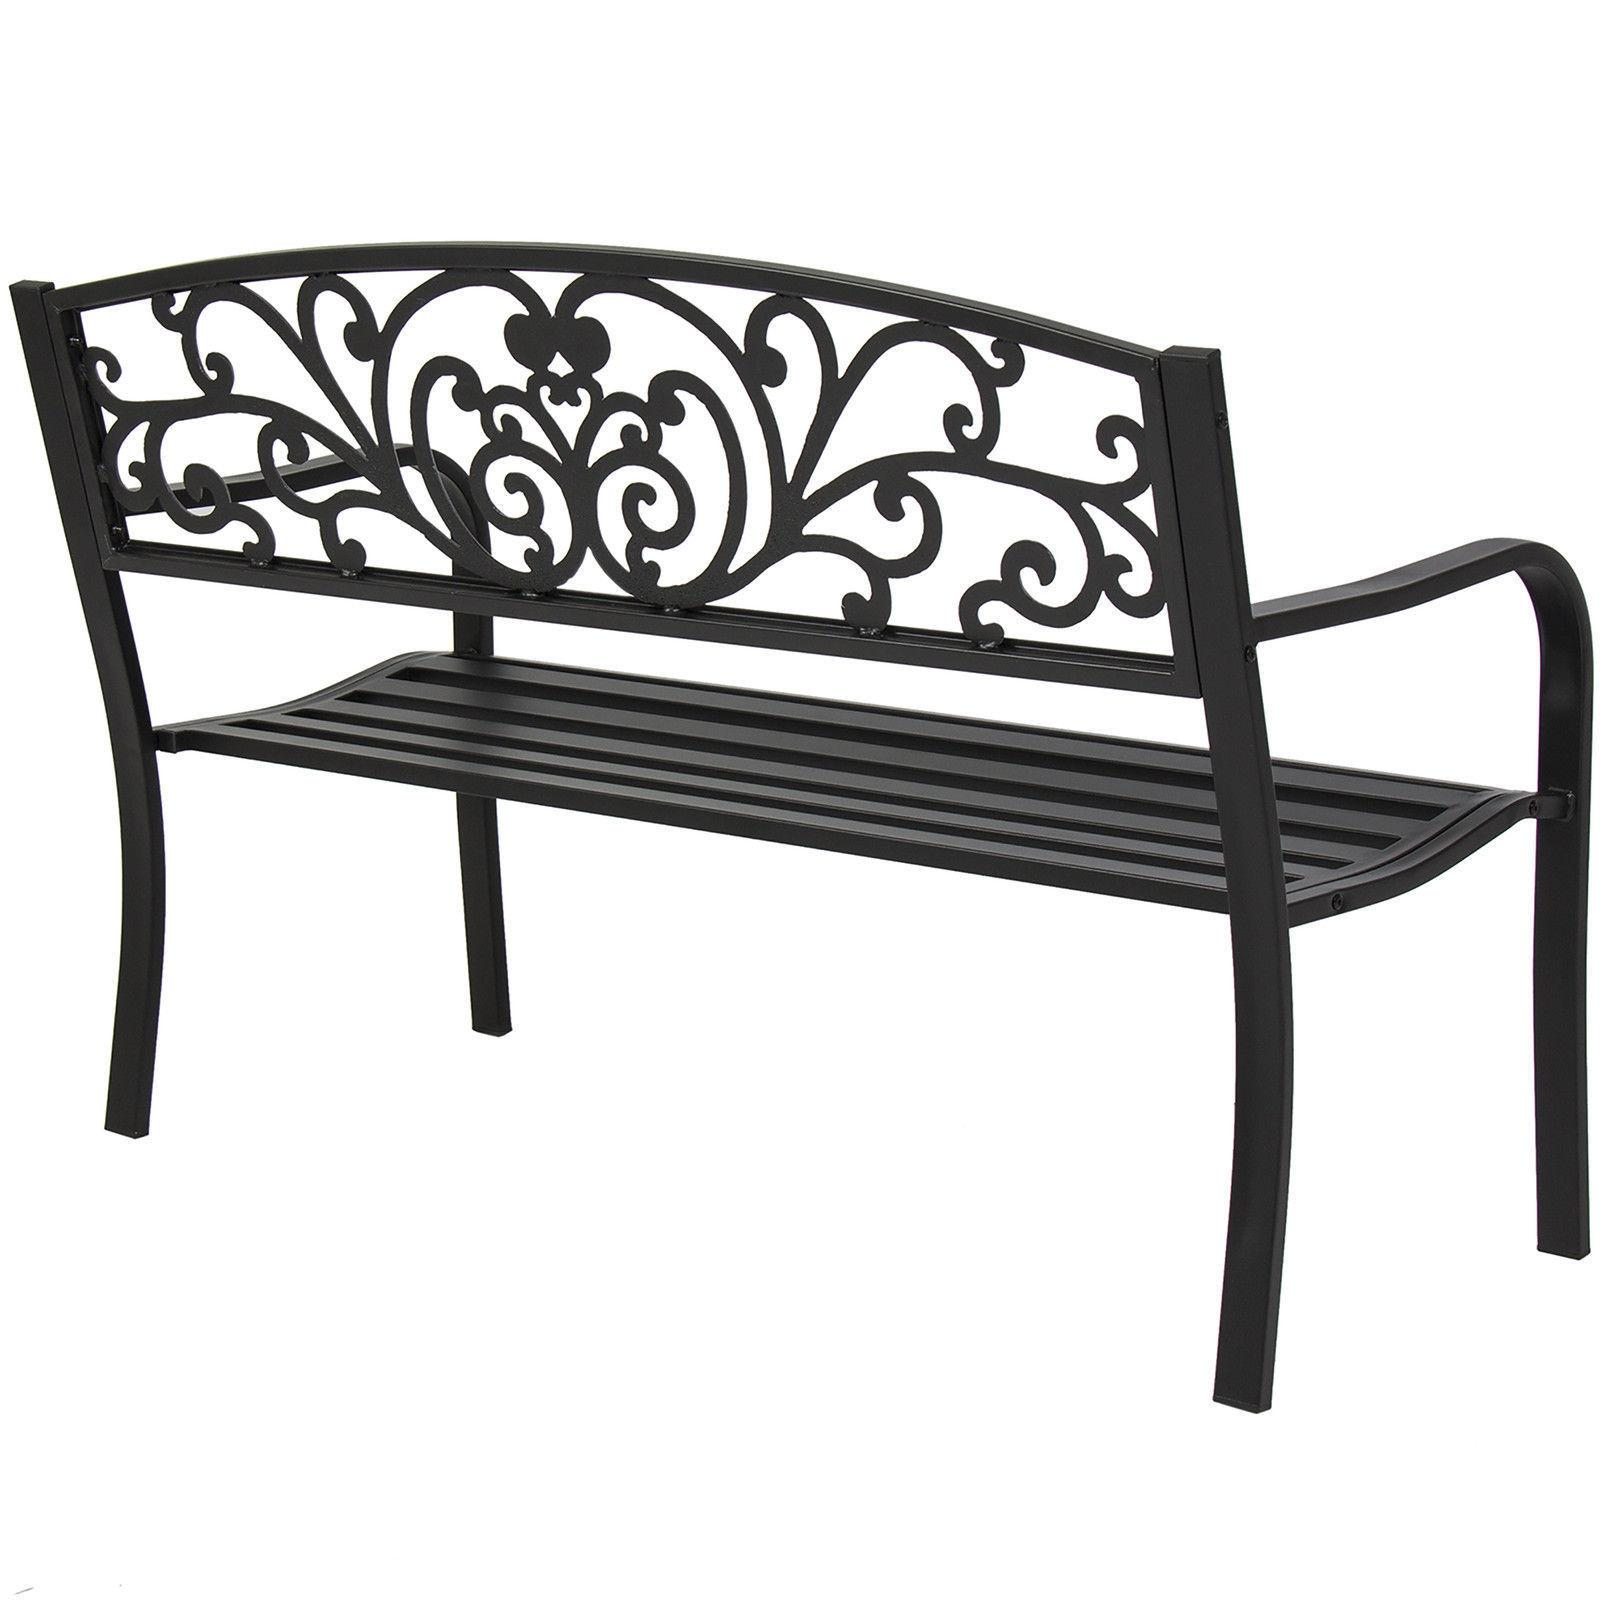 BCP Garden Bench Park Porch Furniture